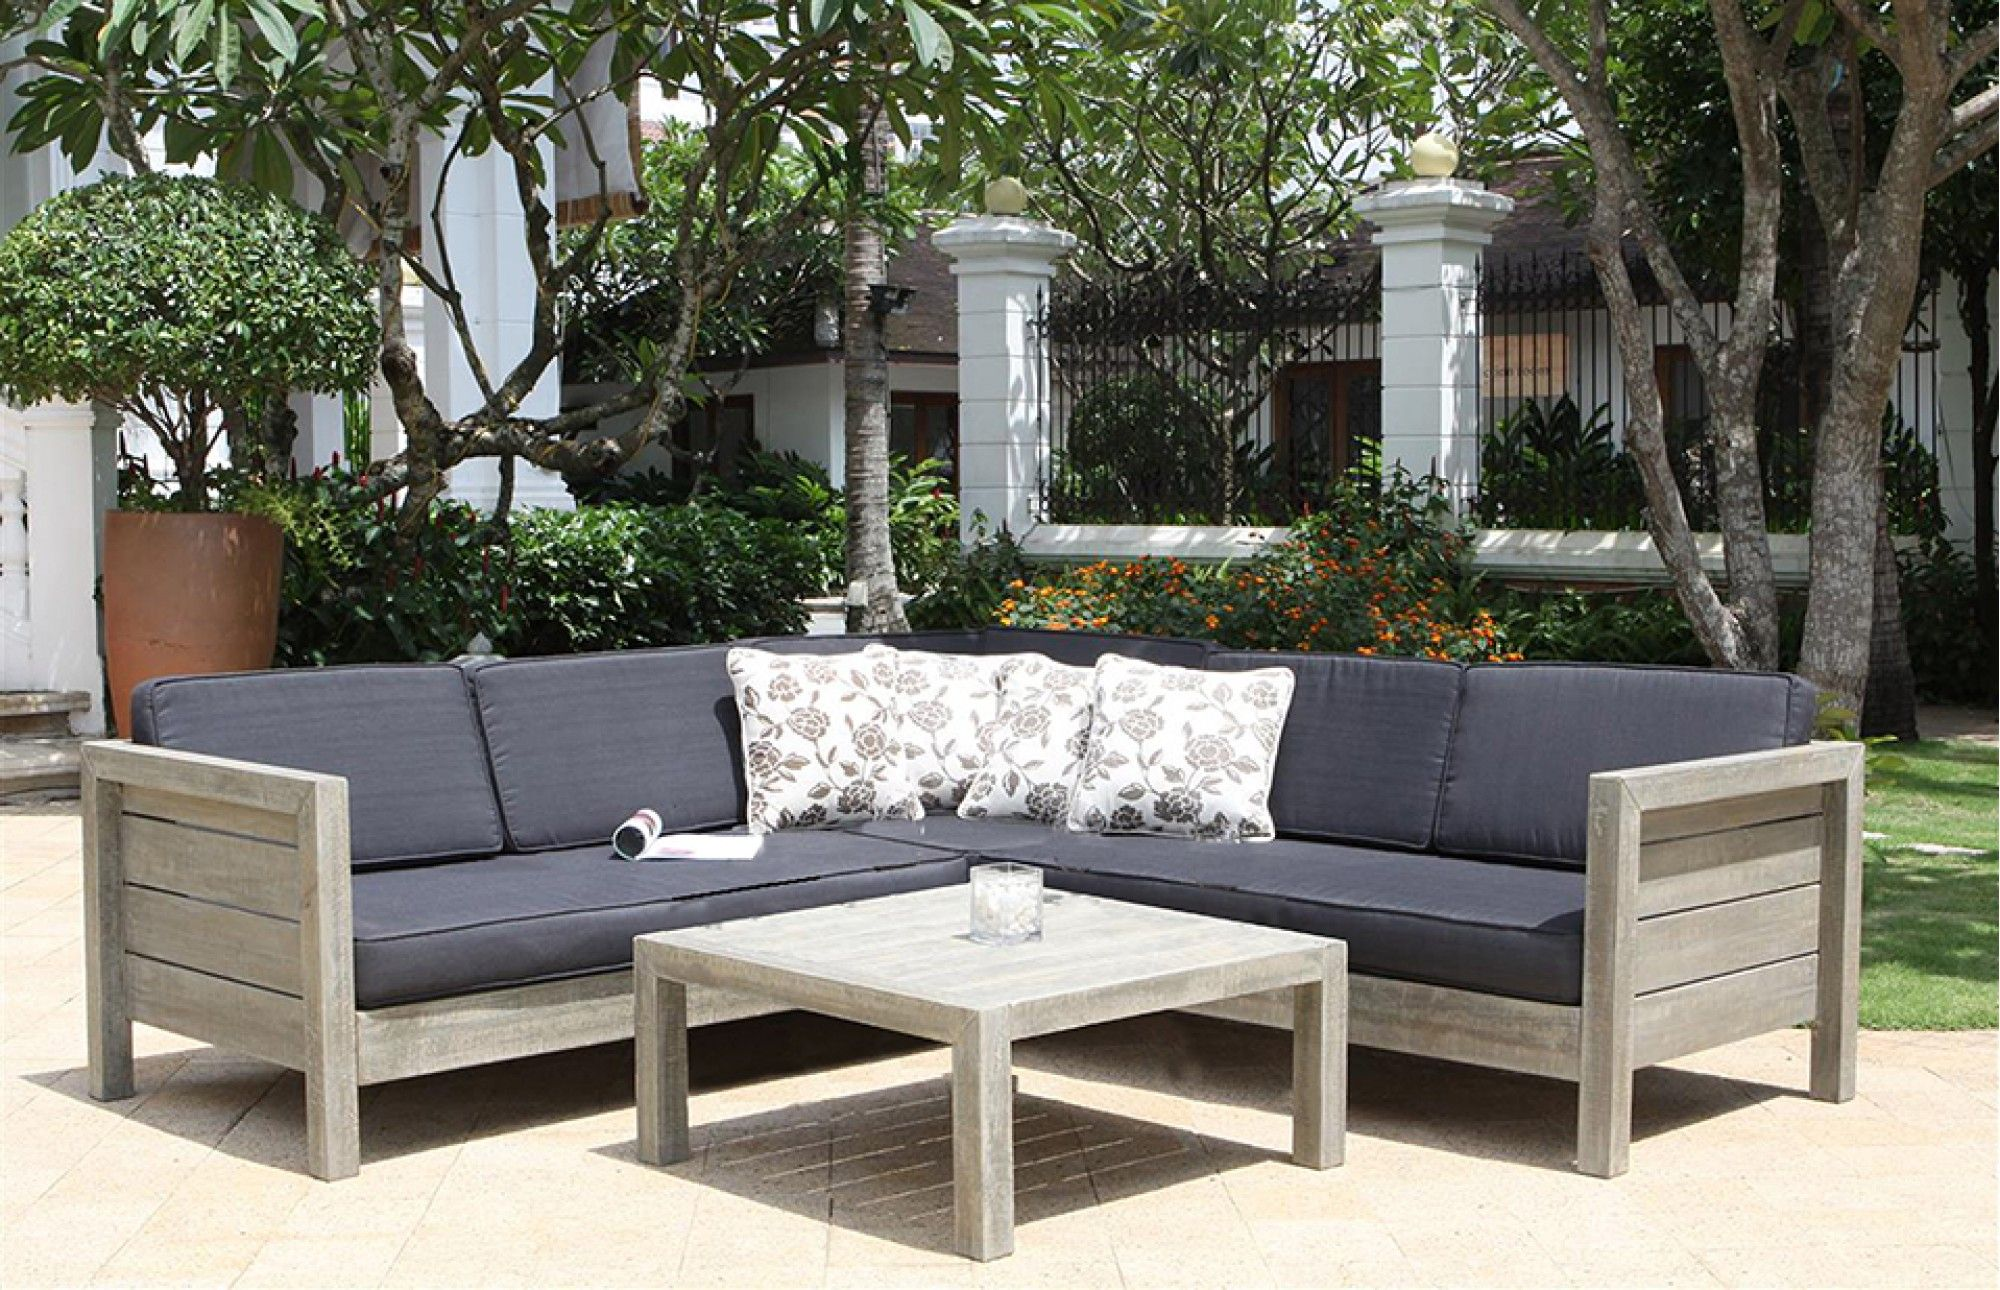 lodge sofa quilted microsuede slipcover buy the garden set made from solid wood and get